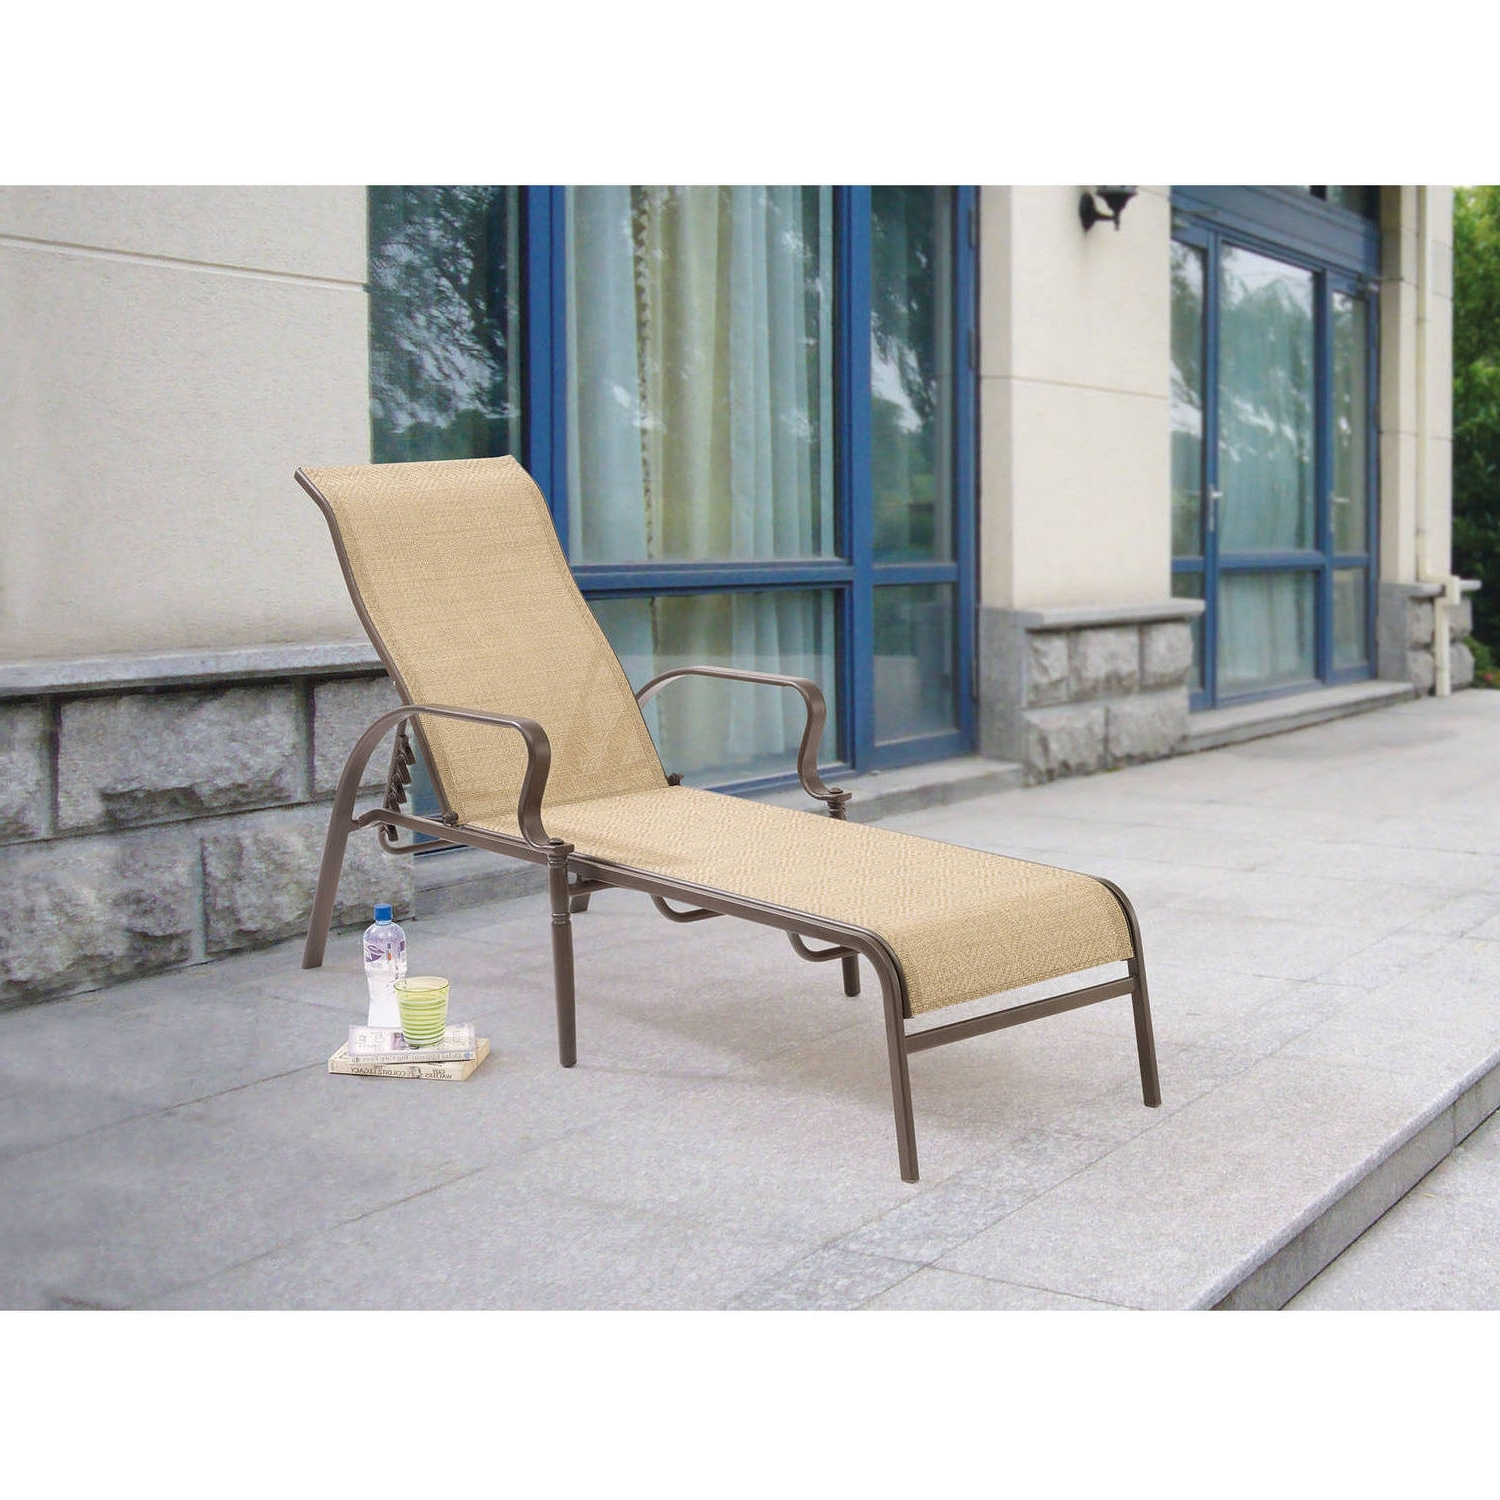 Fabric Outdoor Chaise Lounge Chairs In Well Known Convertible Chair : Replacement Sling Back Chairs Replacement (View 11 of 15)